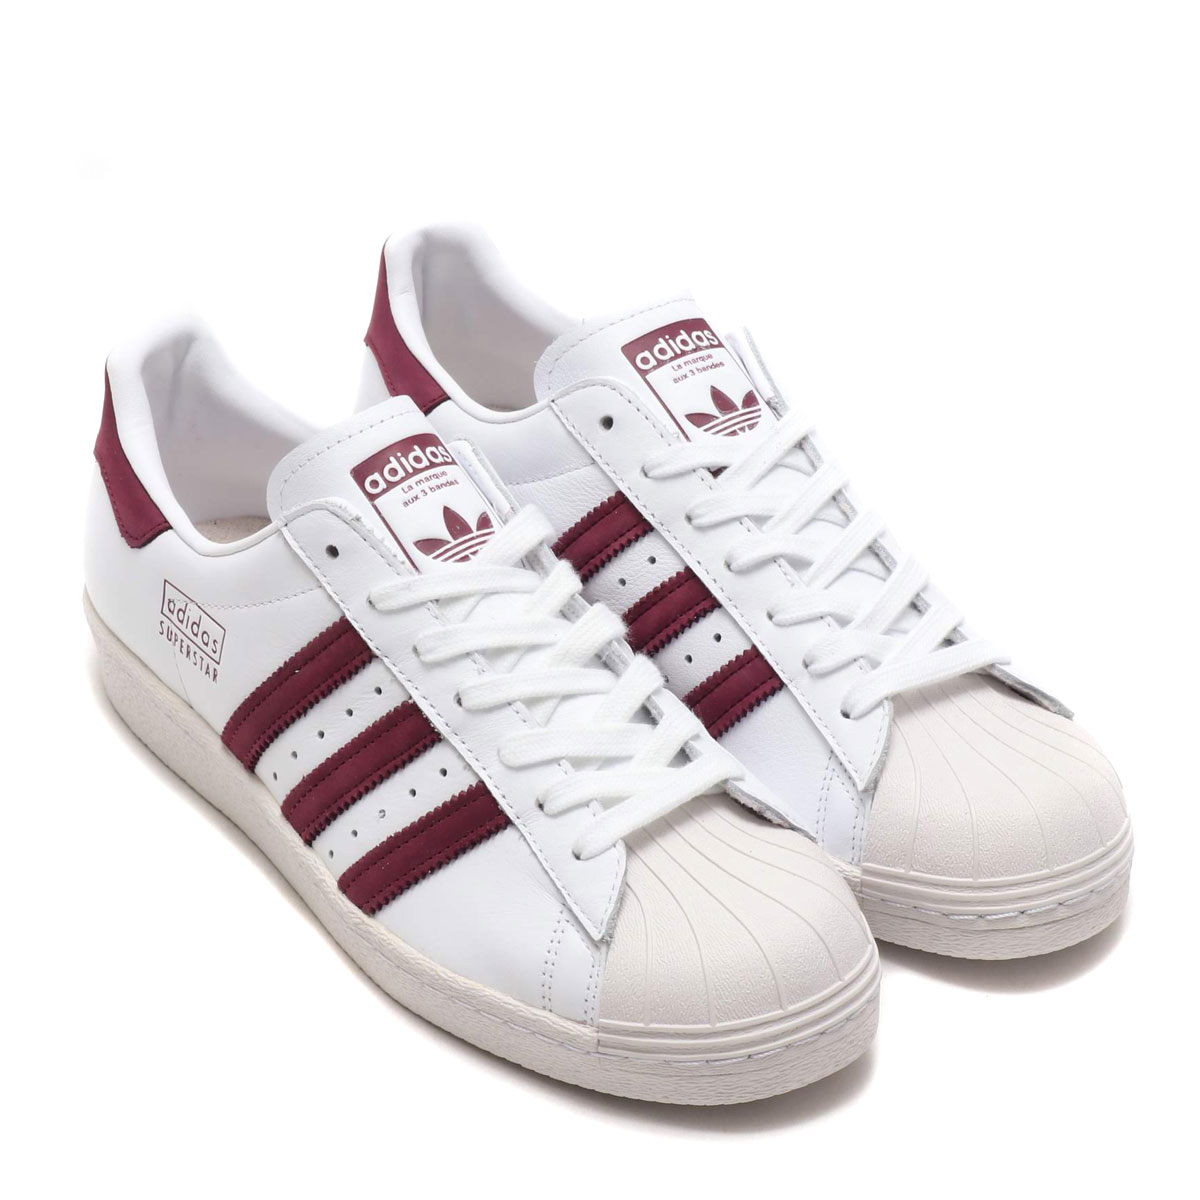 7ddd04bb4e adidas Originals SUPERSTAR 80s (RUNNING WHITE MAROON CRYSTAL WHITE) (Adidas  original soot soft-headed star 80s)